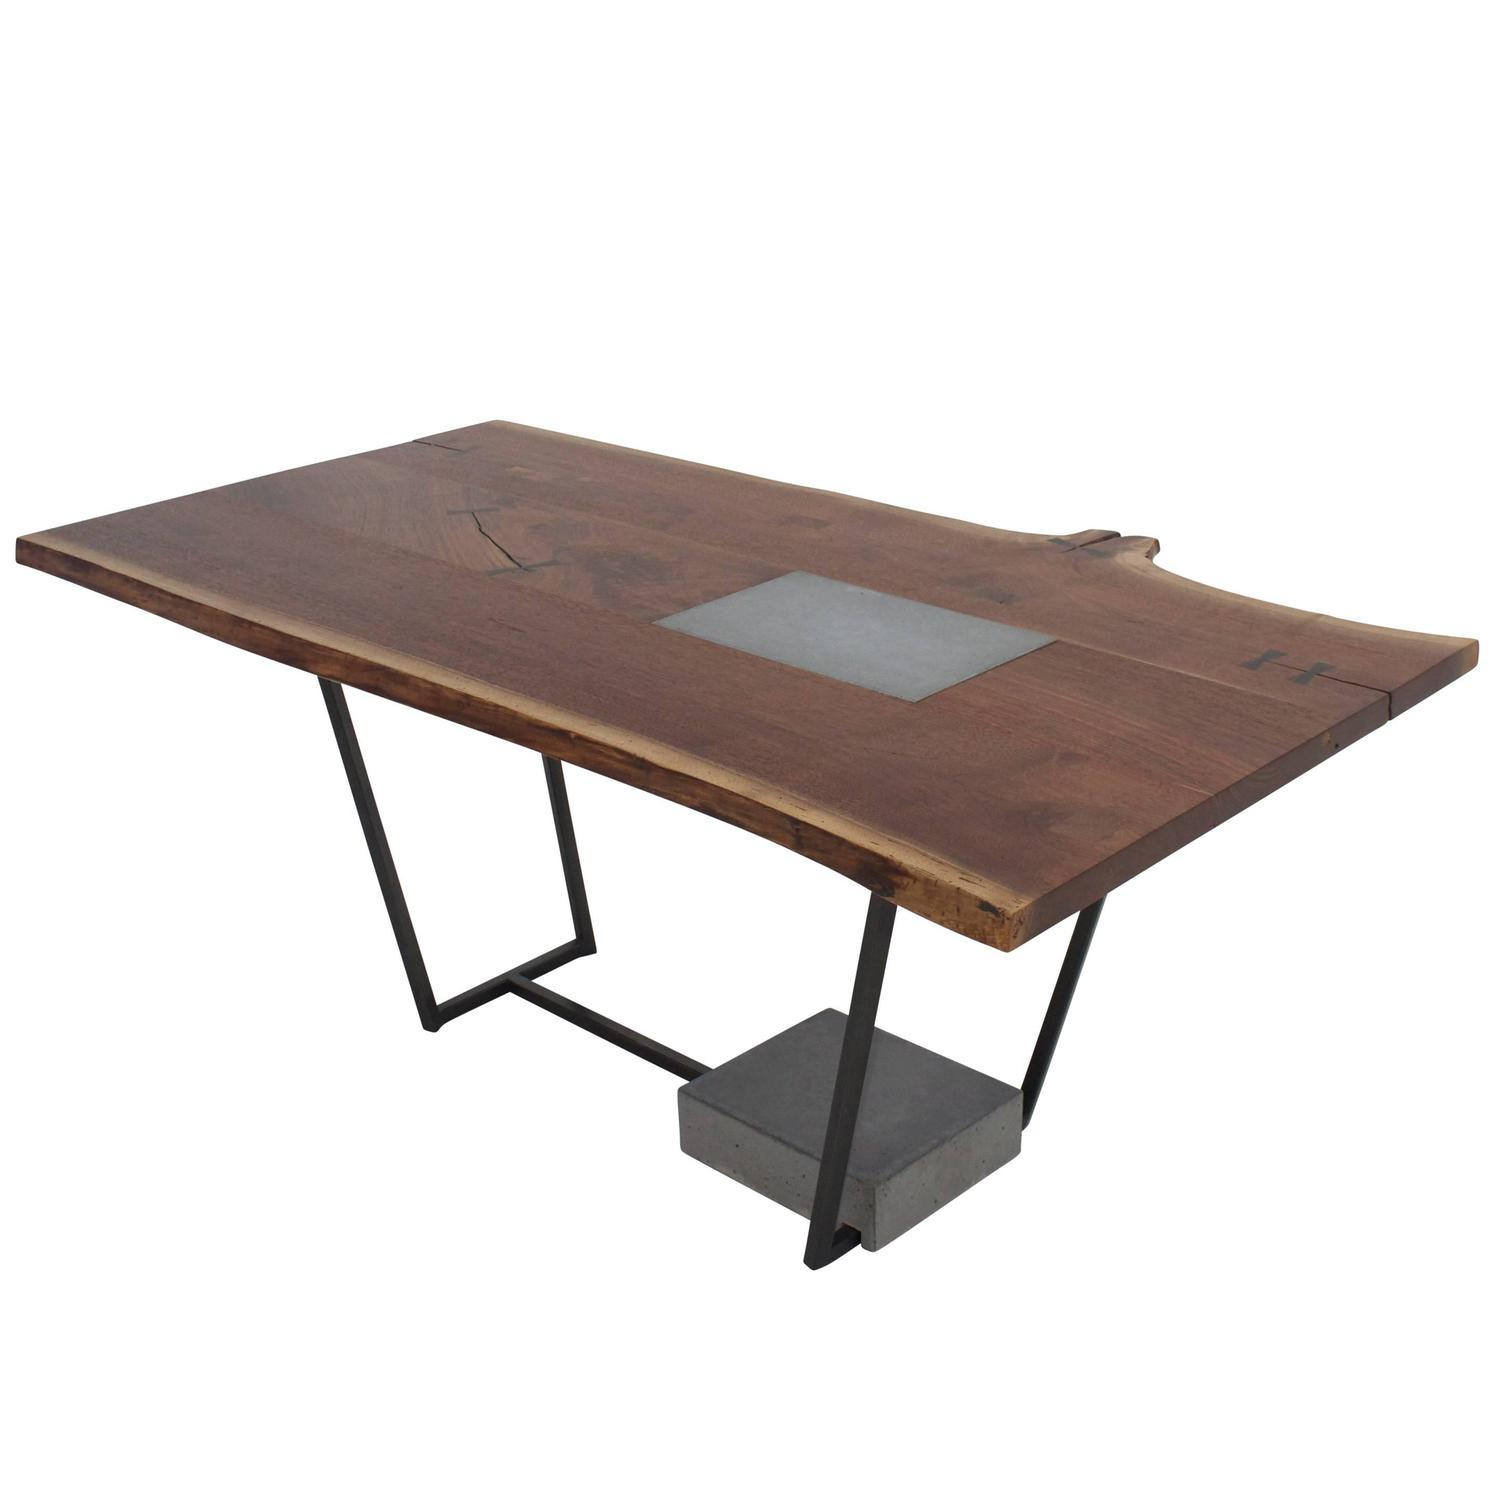 Concrete Dining Room Tables 28 For Sale at 1stdibs